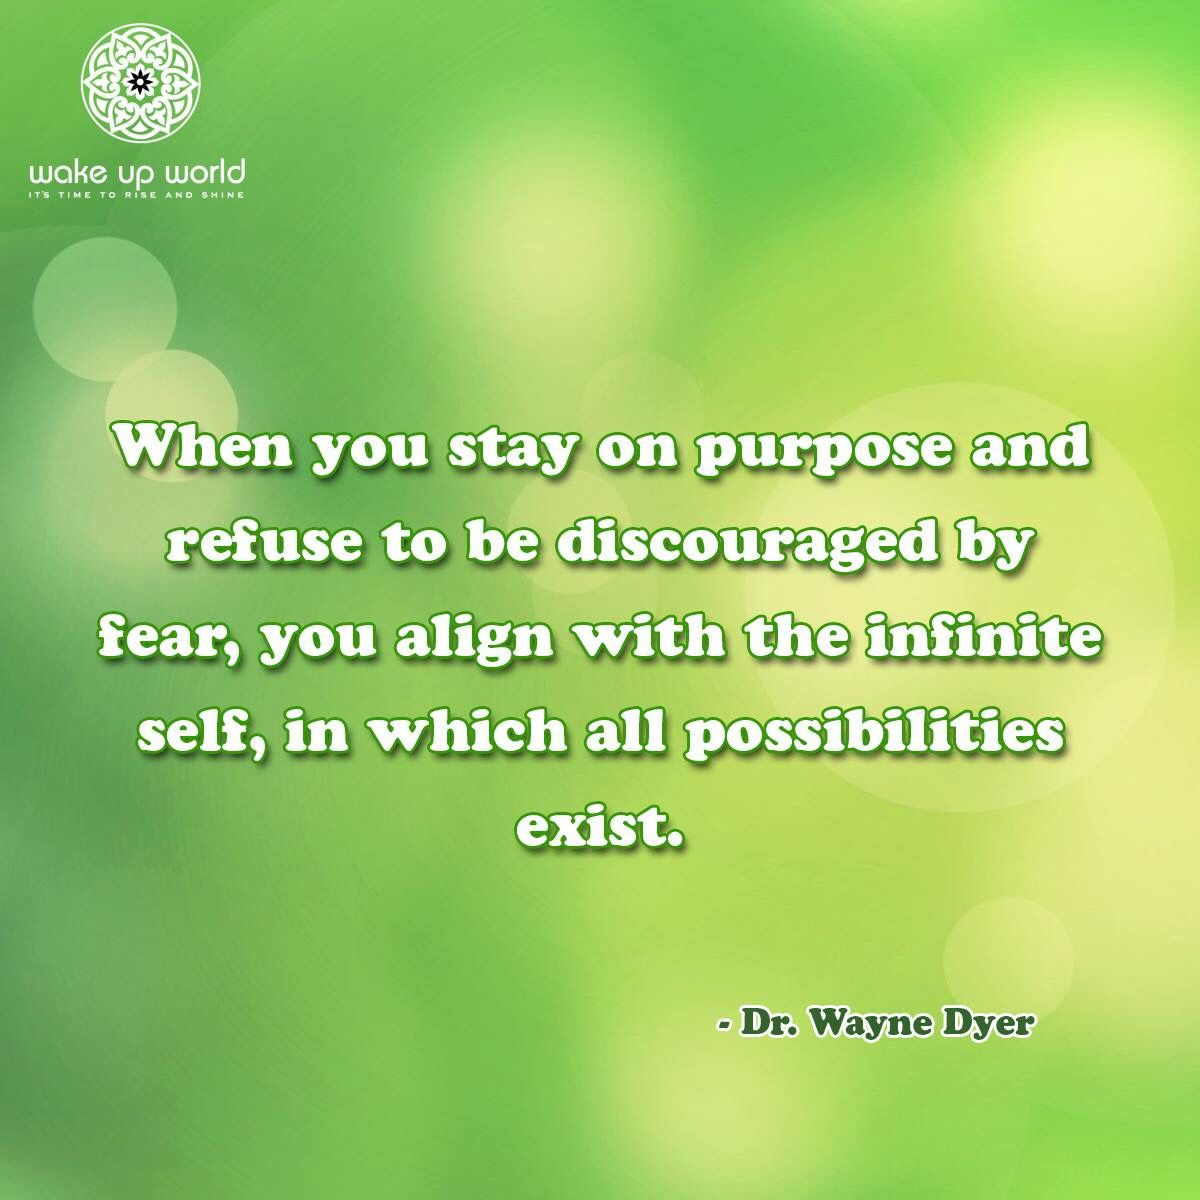 Stay on your purpose!